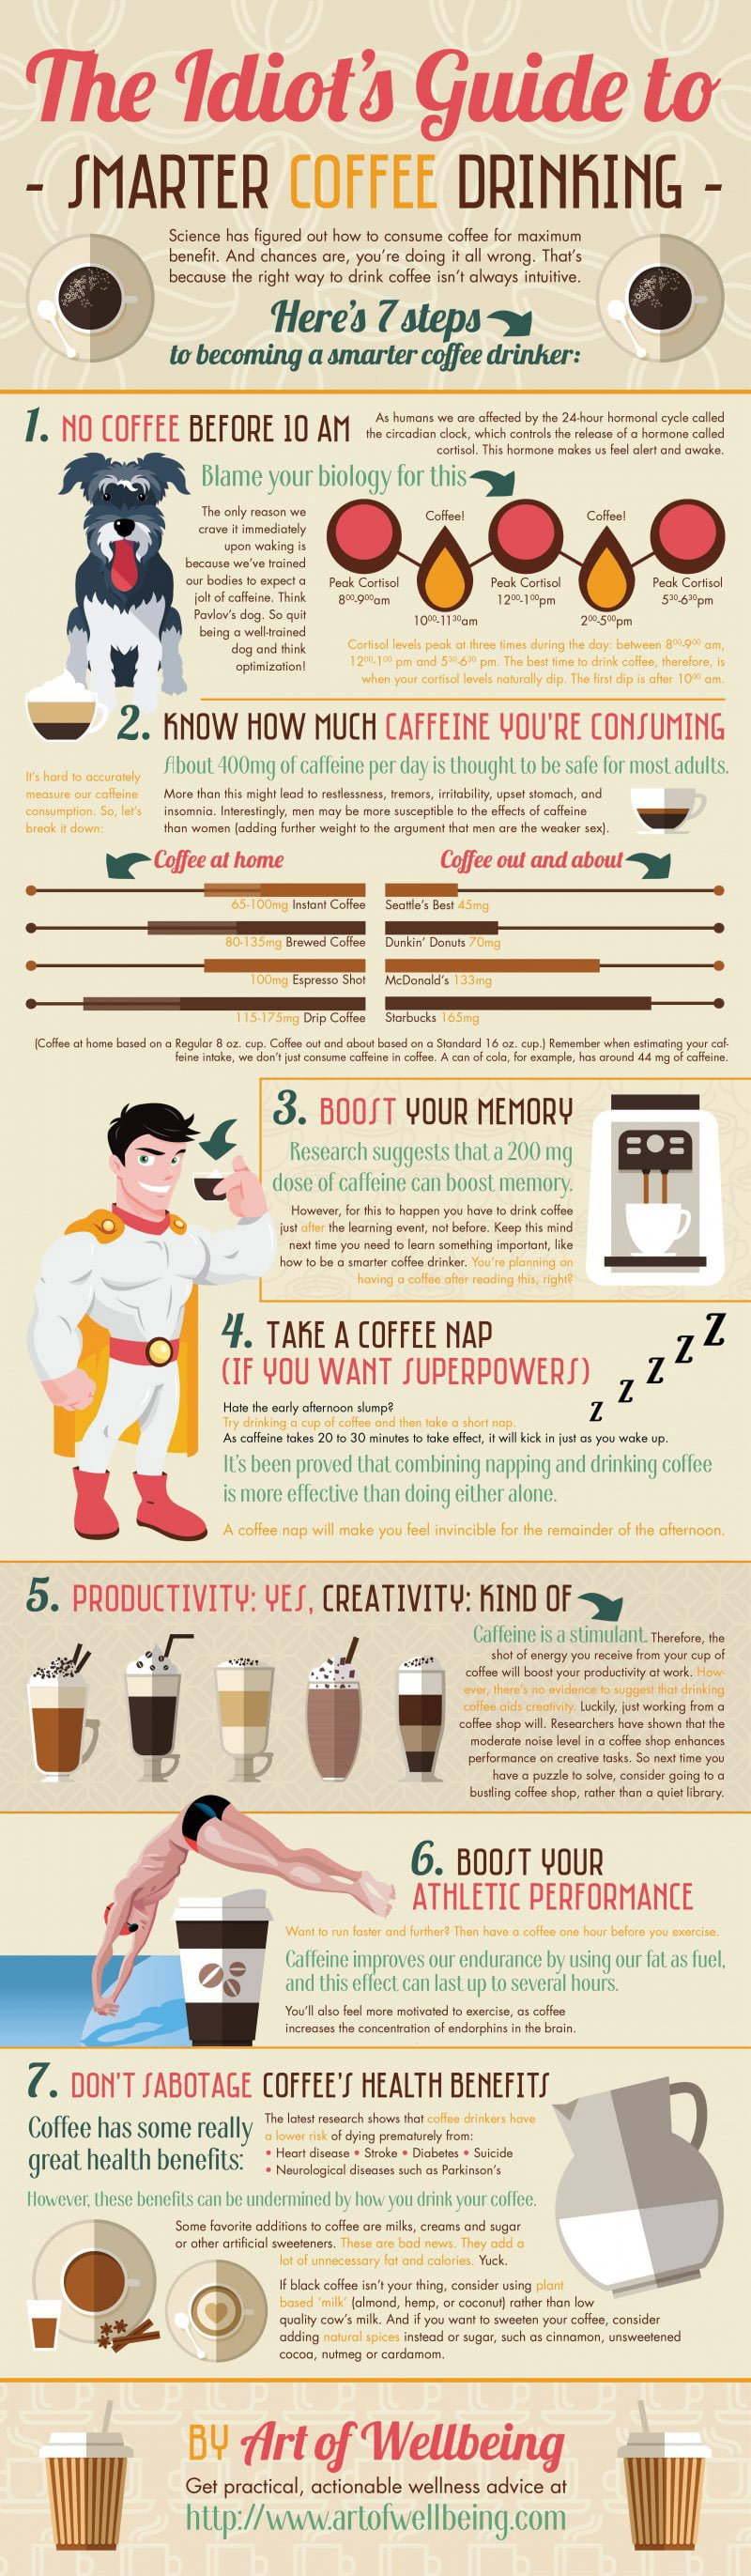 The Idiots Guide To Smarter Coffee Drinking Infographic